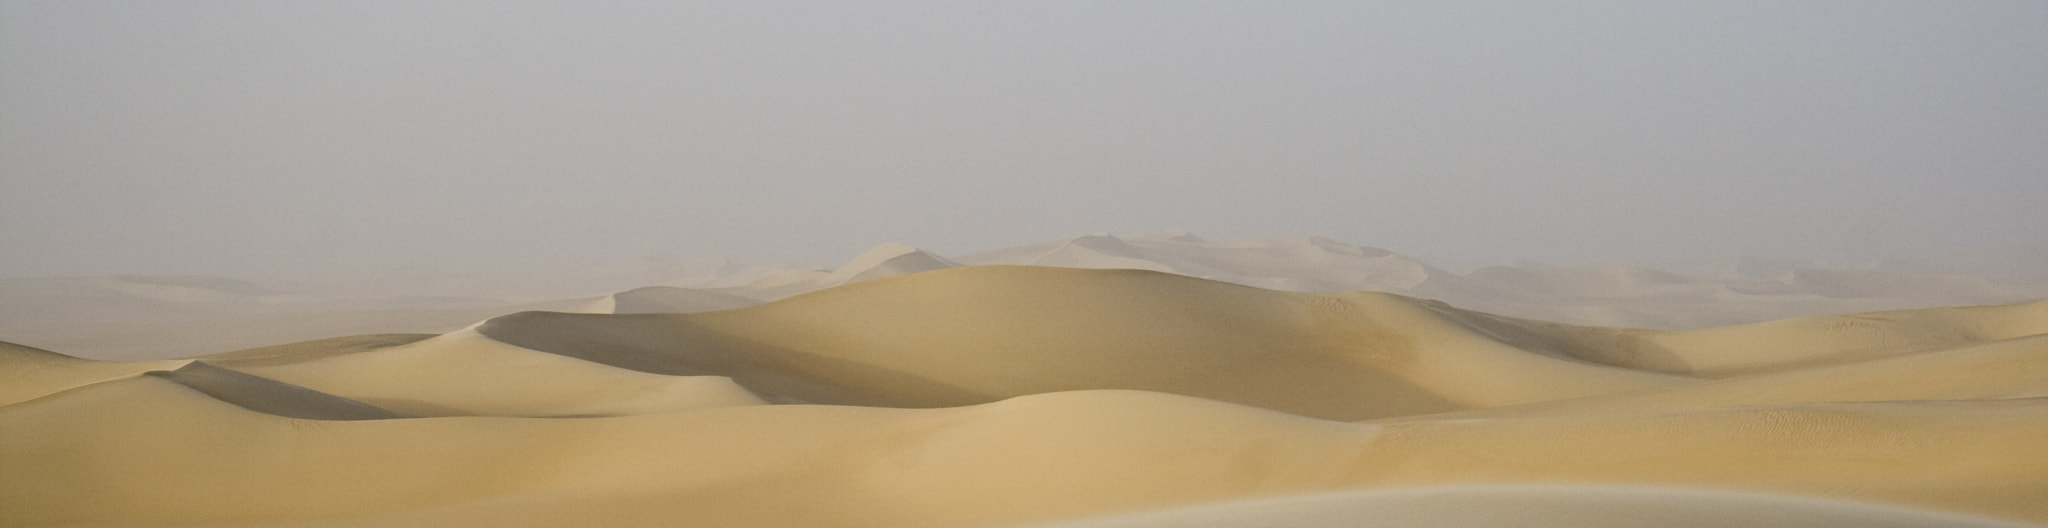 Photograph mystery dunes by Ahmed Saad on 500px